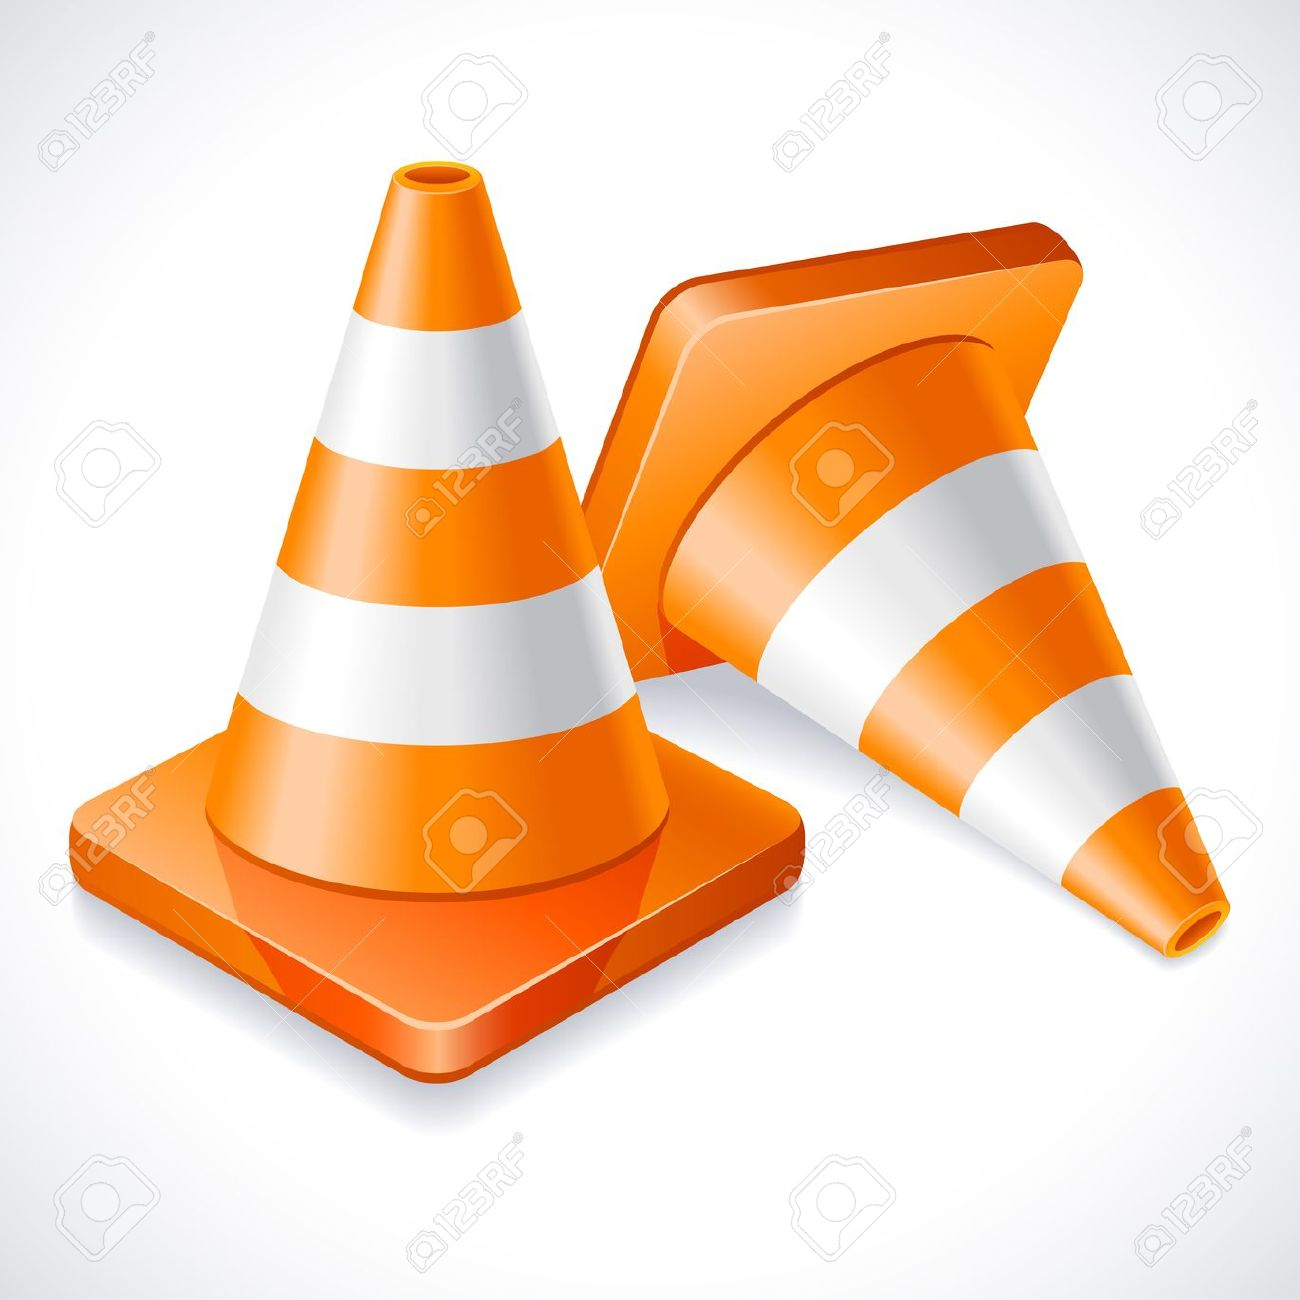 Orange road cone clipart.